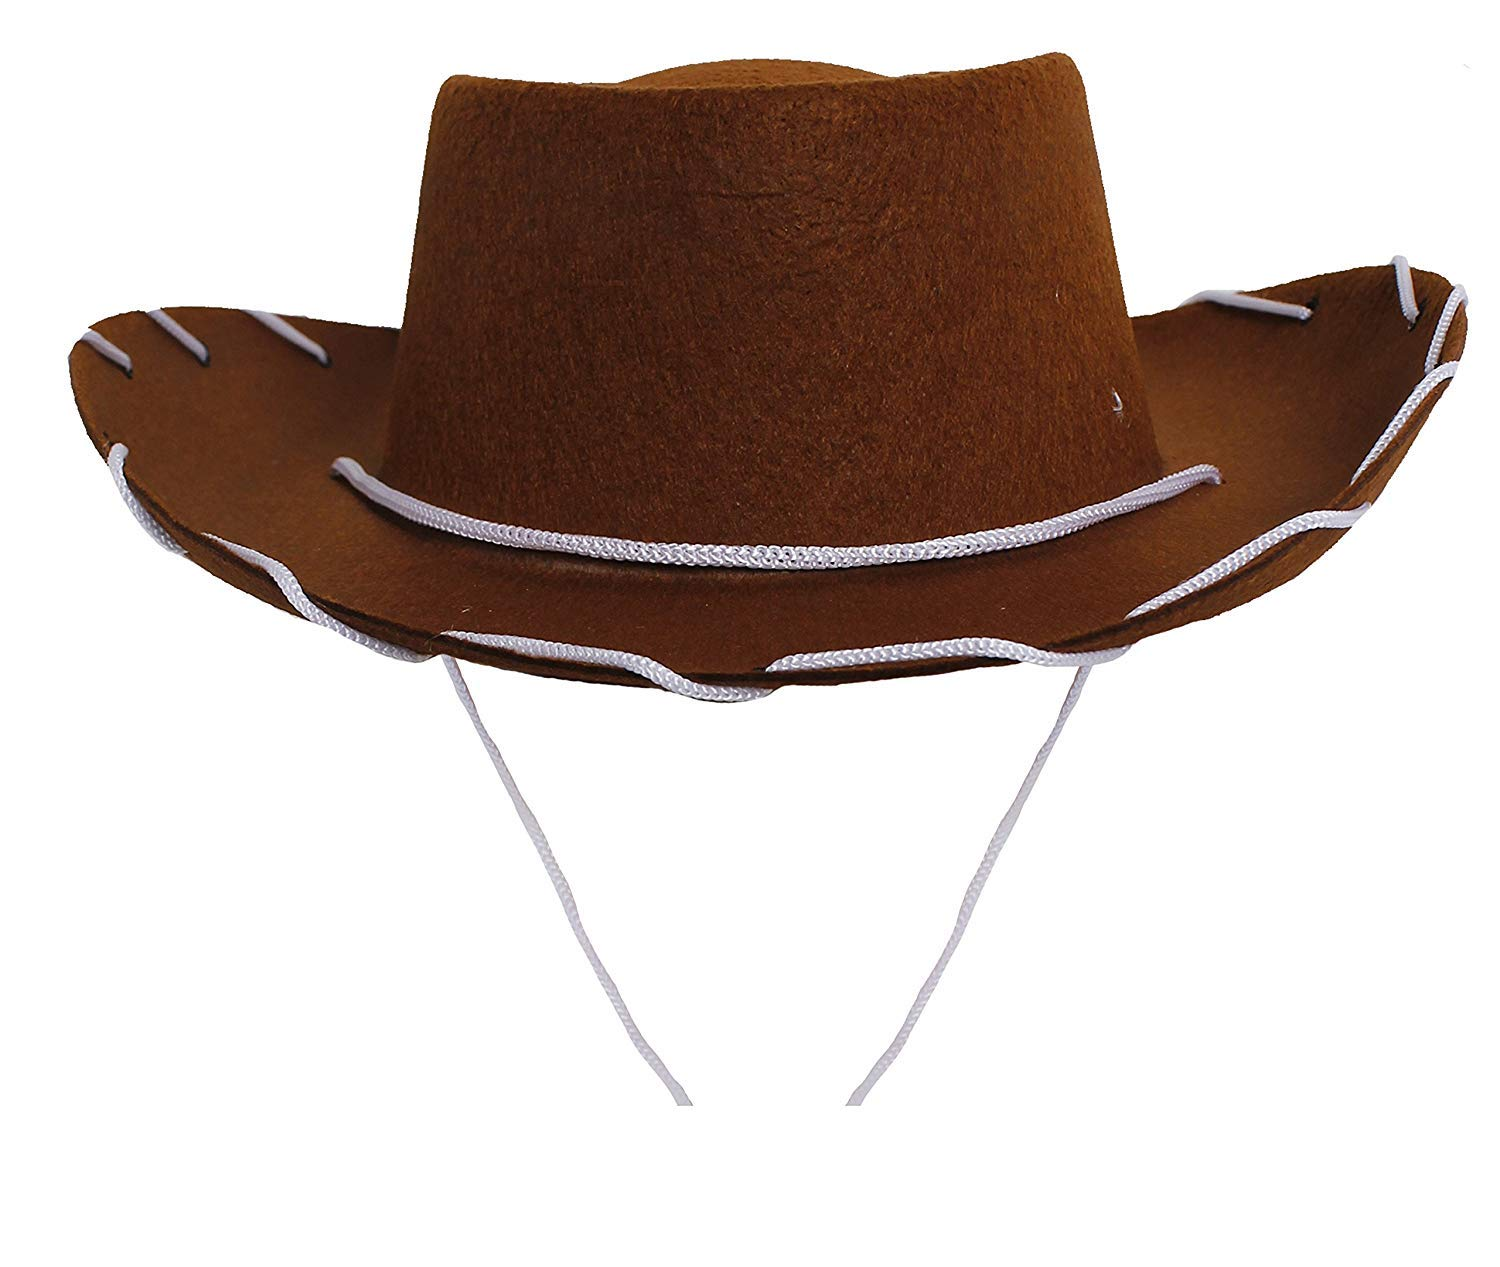 c97564ee8 CHILDS COWBOY HAT FANCY DRESS ACCESSORY HATS COW BOY WILD WEST HAT IN  BLACK, BROWN OR RED. 52CM HEADSIZE BOYS GIRLS COWGIRL (BLACK, PACK SIZE OF  1)